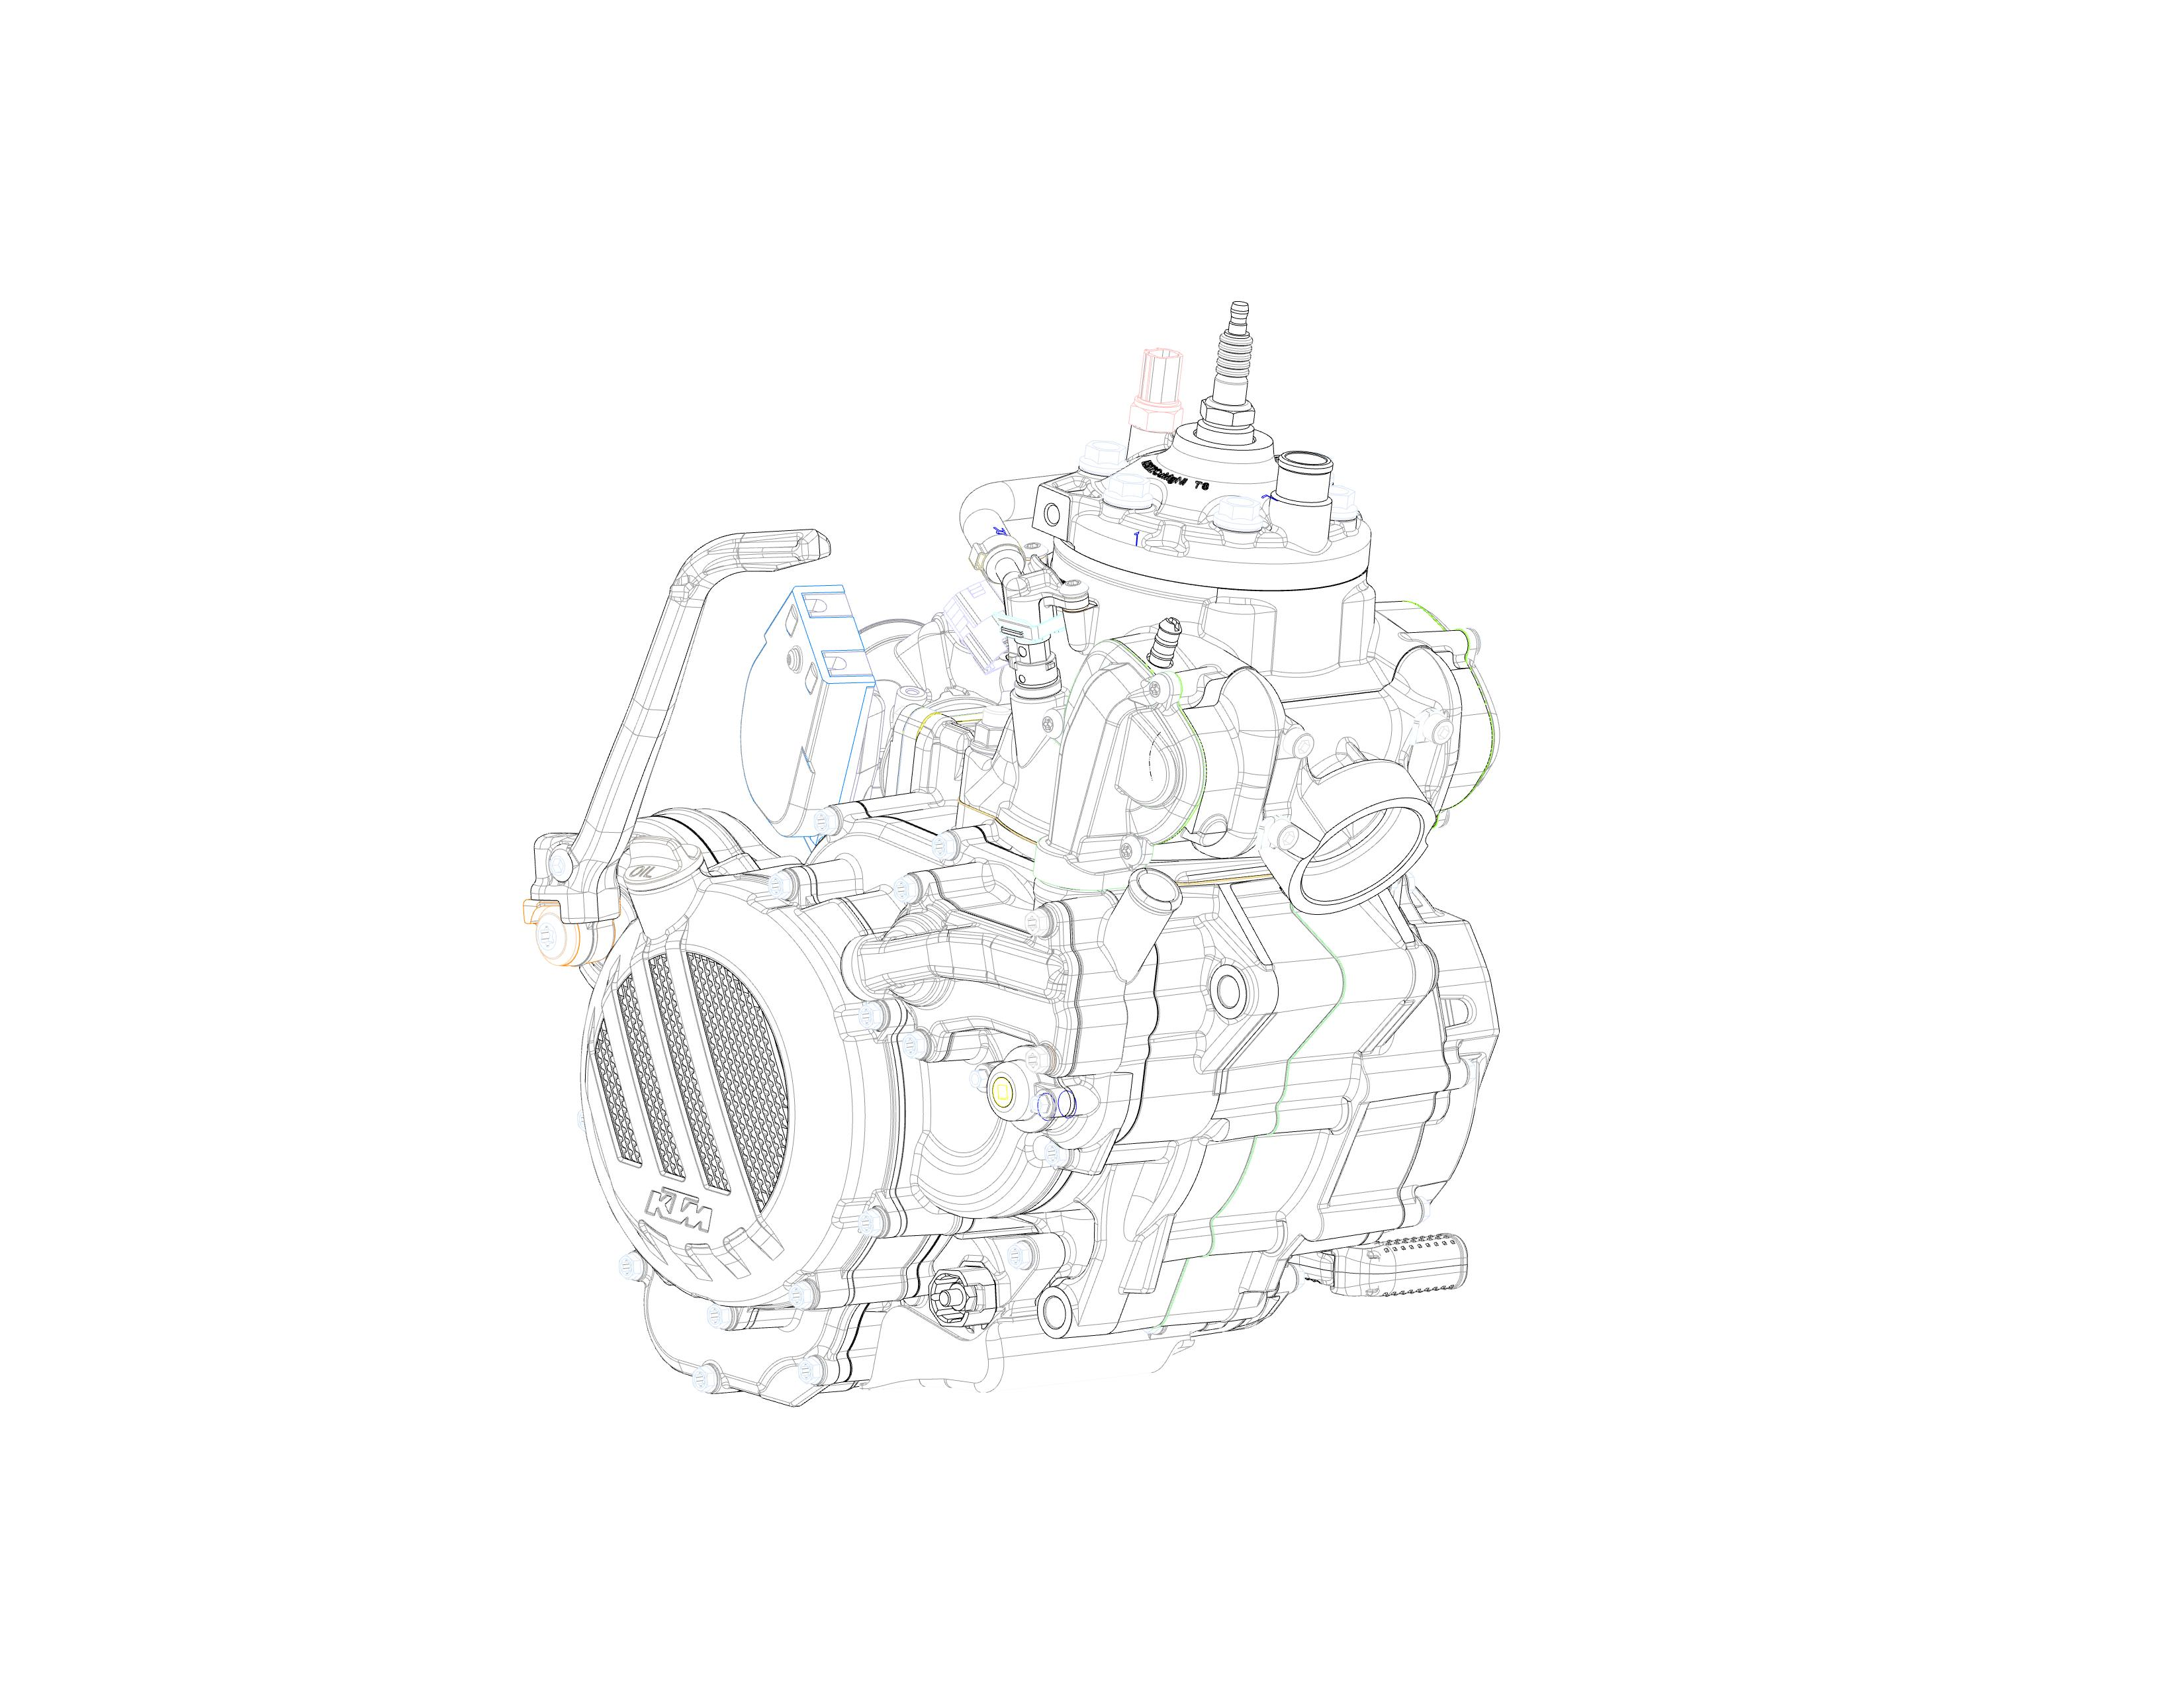 KTM GROUNDBREAKING 2-STROKE FUEL INJECTION MACHINES